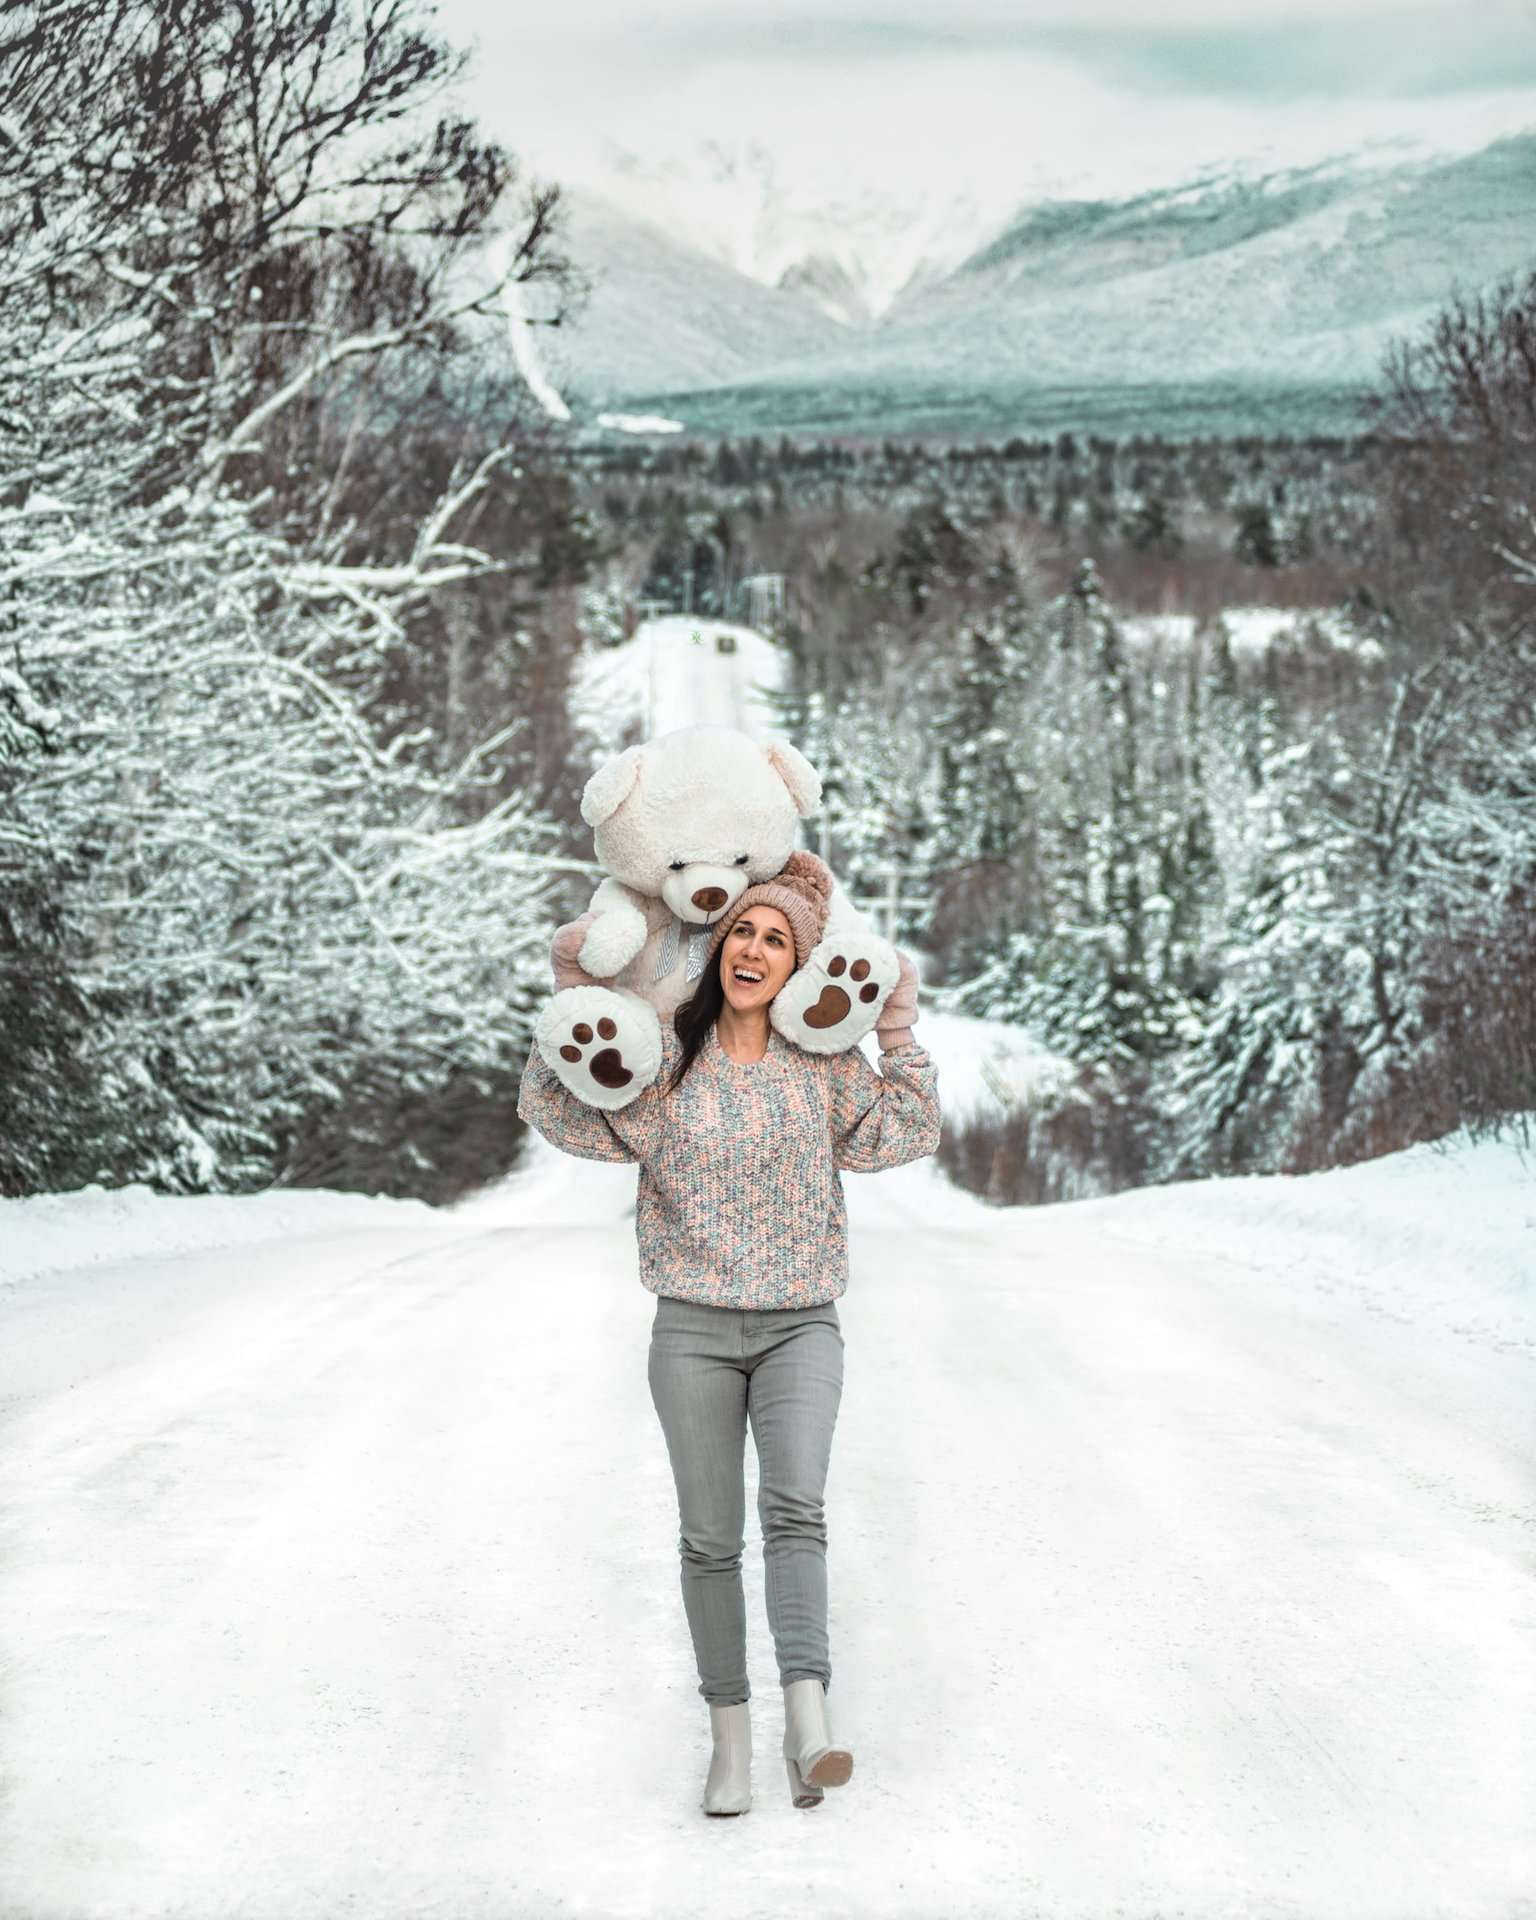 girl with oversized teddy bear on shoulders in snow